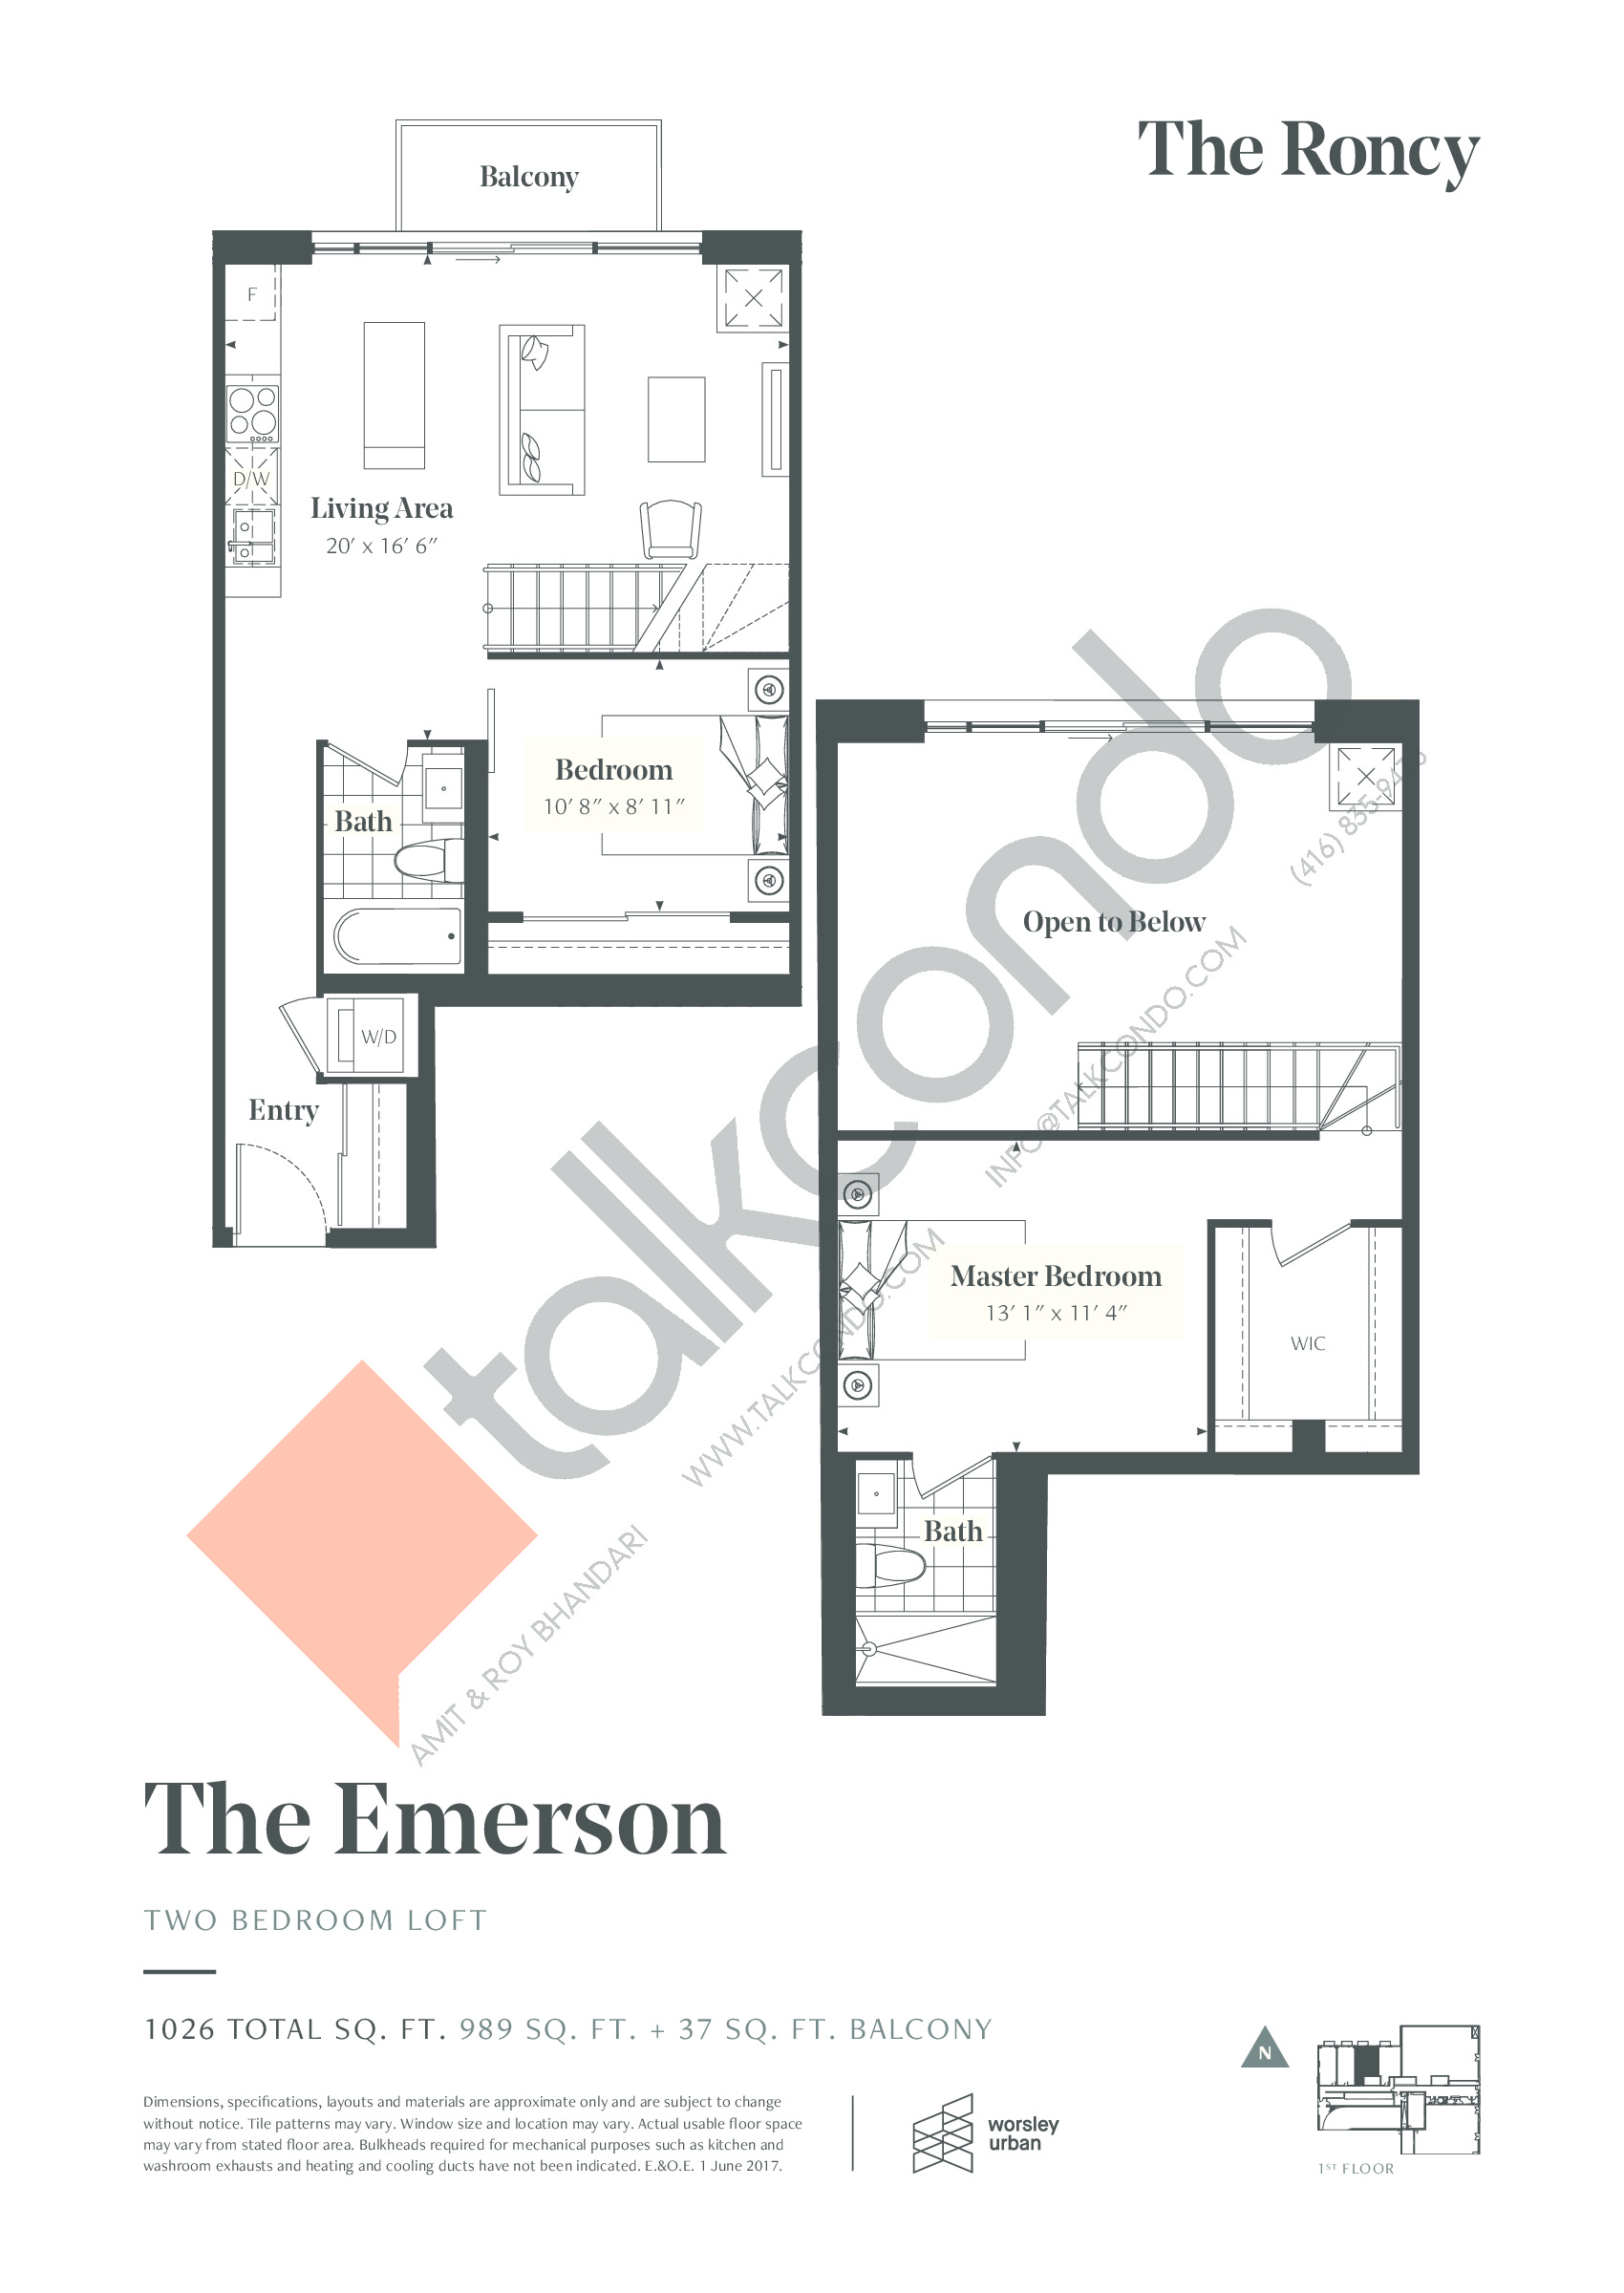 The Emerson Floor Plan at The Roncy Condos - 989 sq.ft